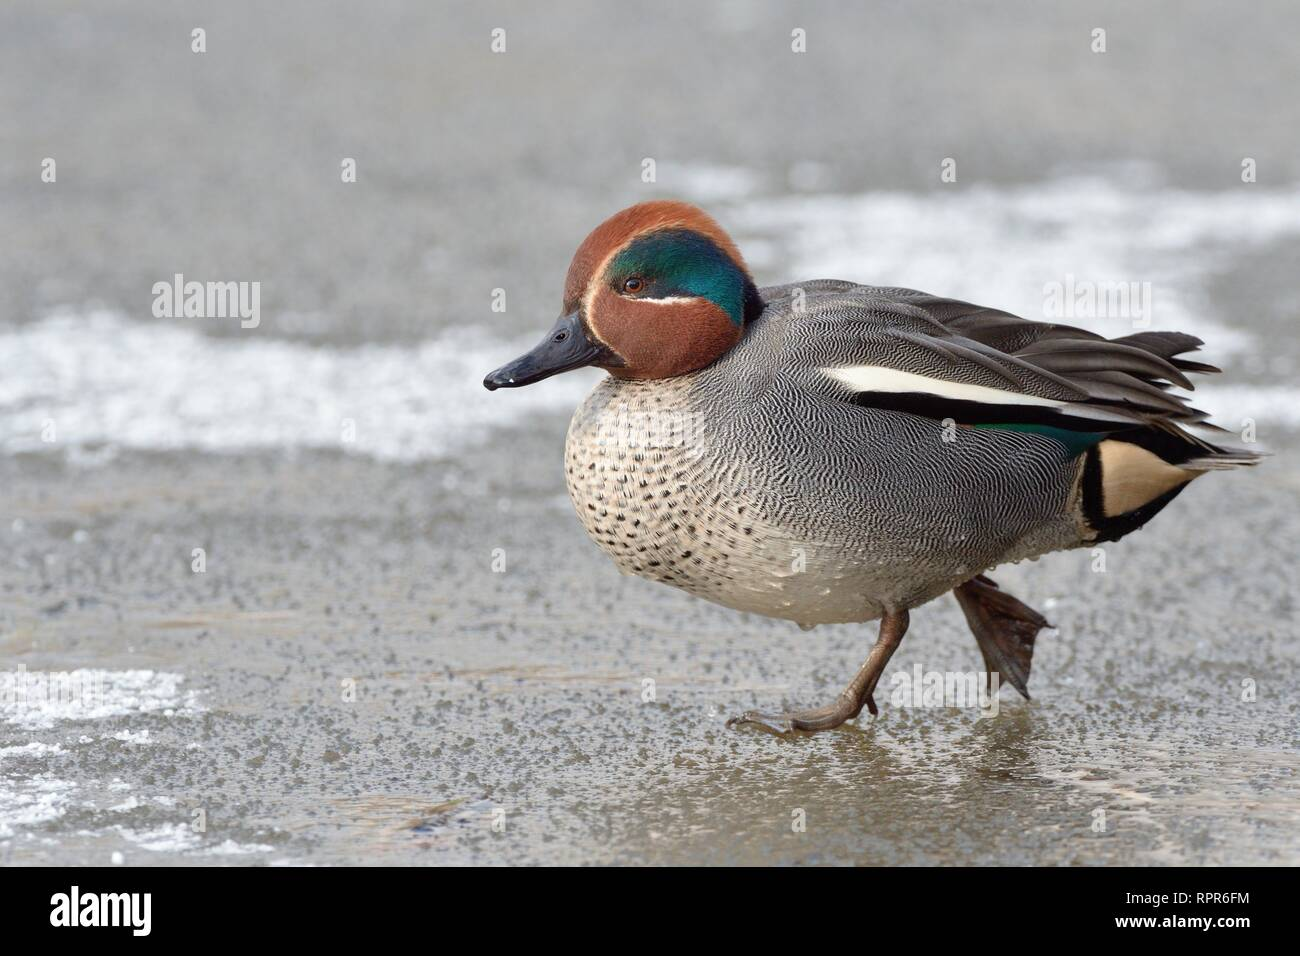 Common teal (Anas crecca) drake walking across a frozen, snow dusted pond, Gloucestershire, UK, February. - Stock Image